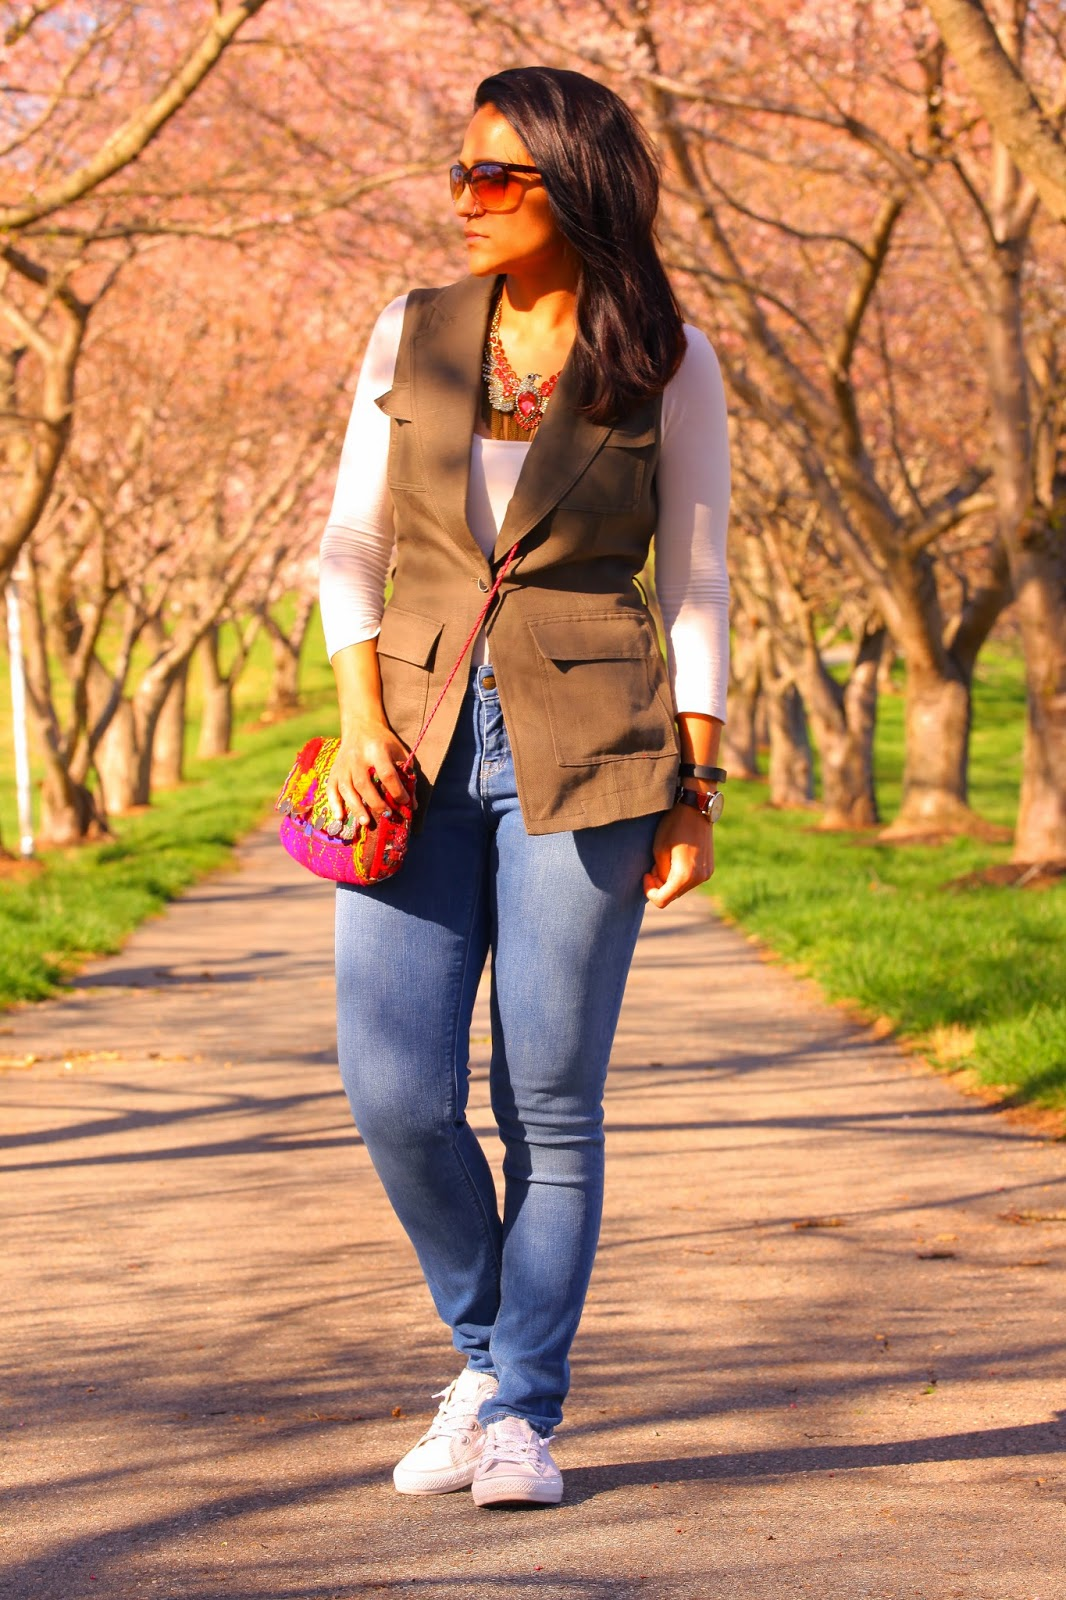 Vest - Banana Republic, Top - Zara // Similar Jeans - Zara, Shoes - Converse, Bag - Crazy & Co. Necklace - Crazy & Co. Tanvii.com